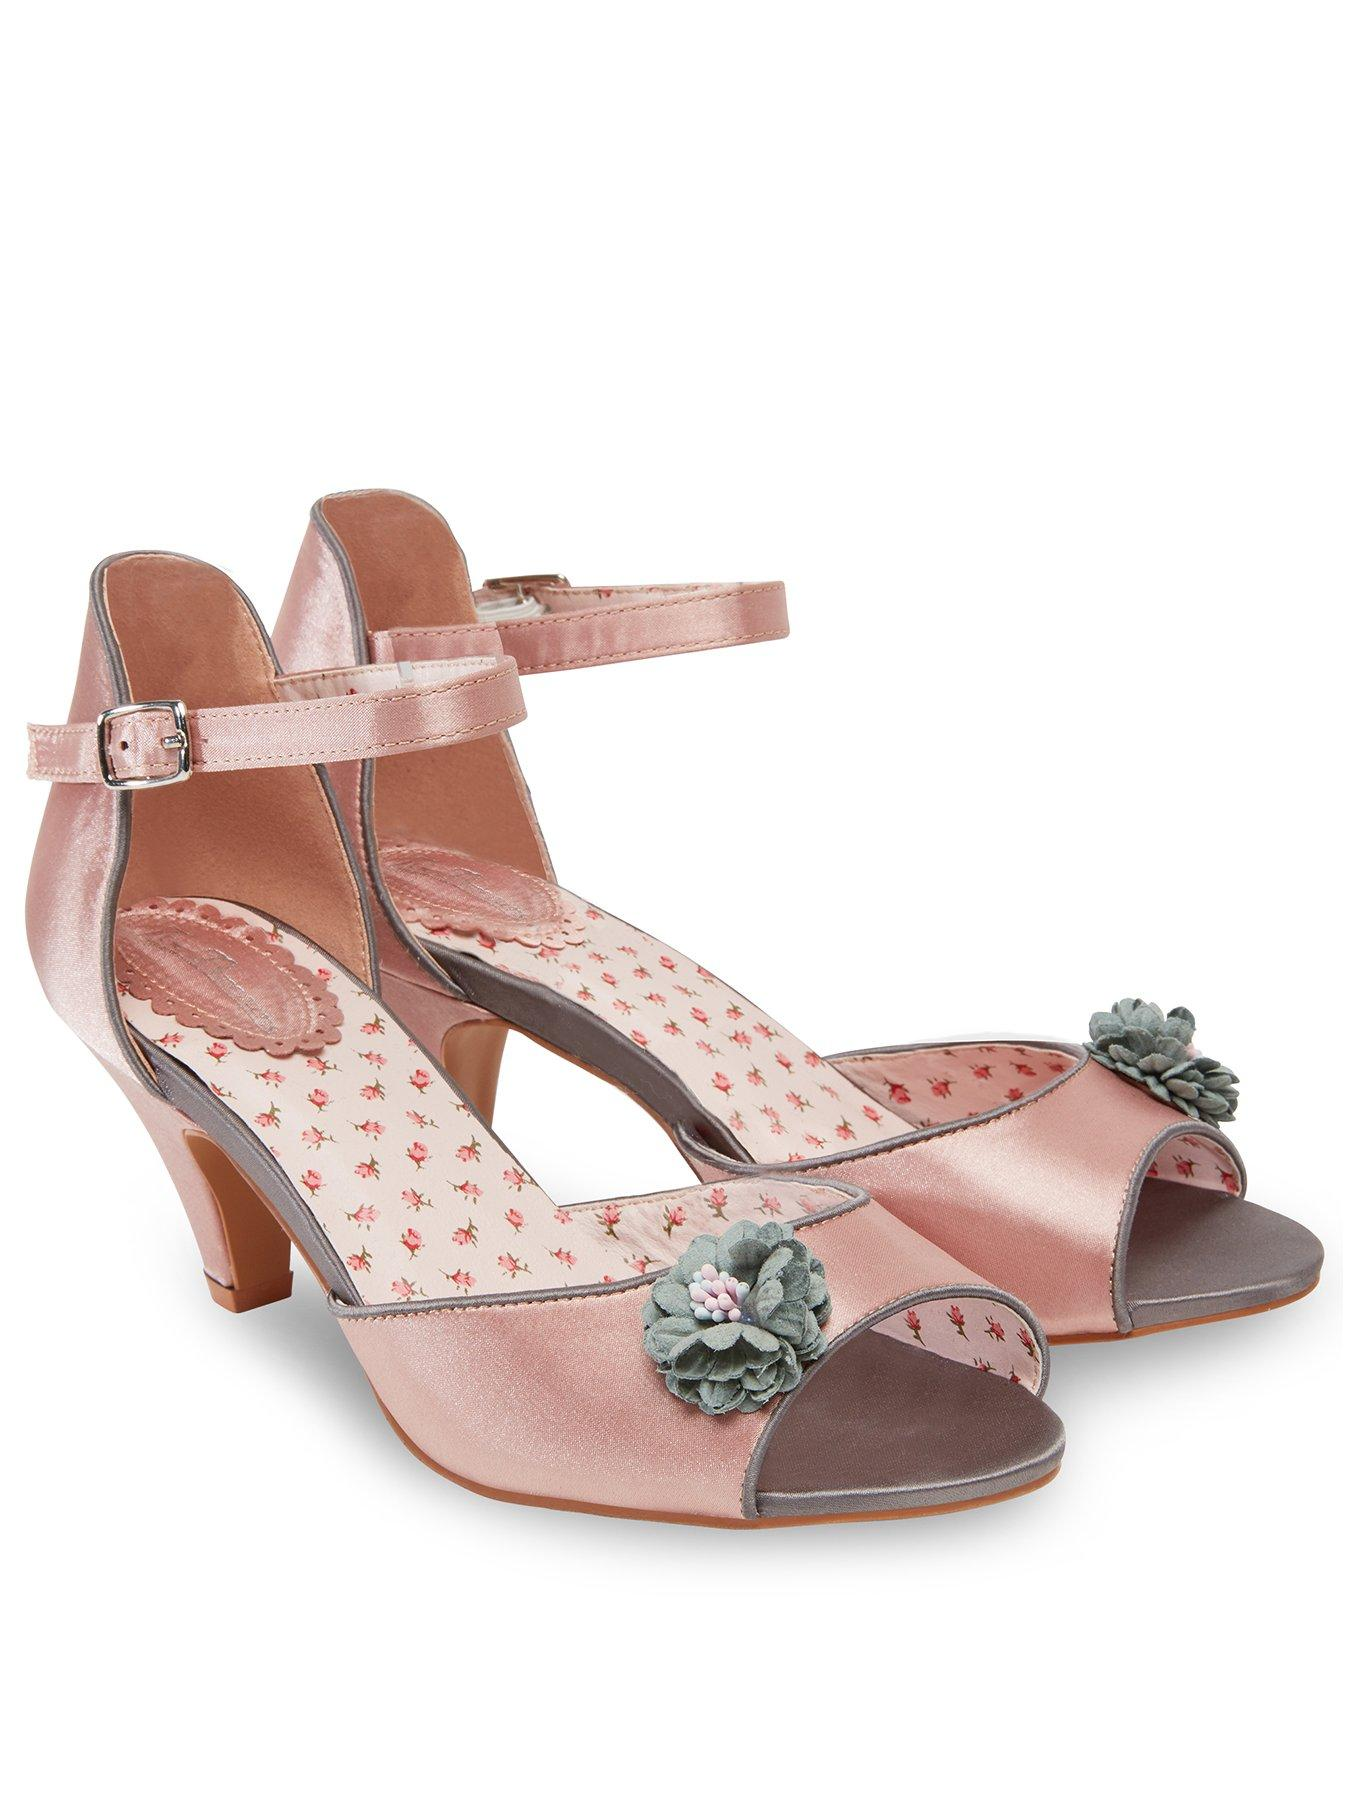 Womens Perfectly Pretty Shoes Ankle Strap Heels Joe Browns l4qLsRPa